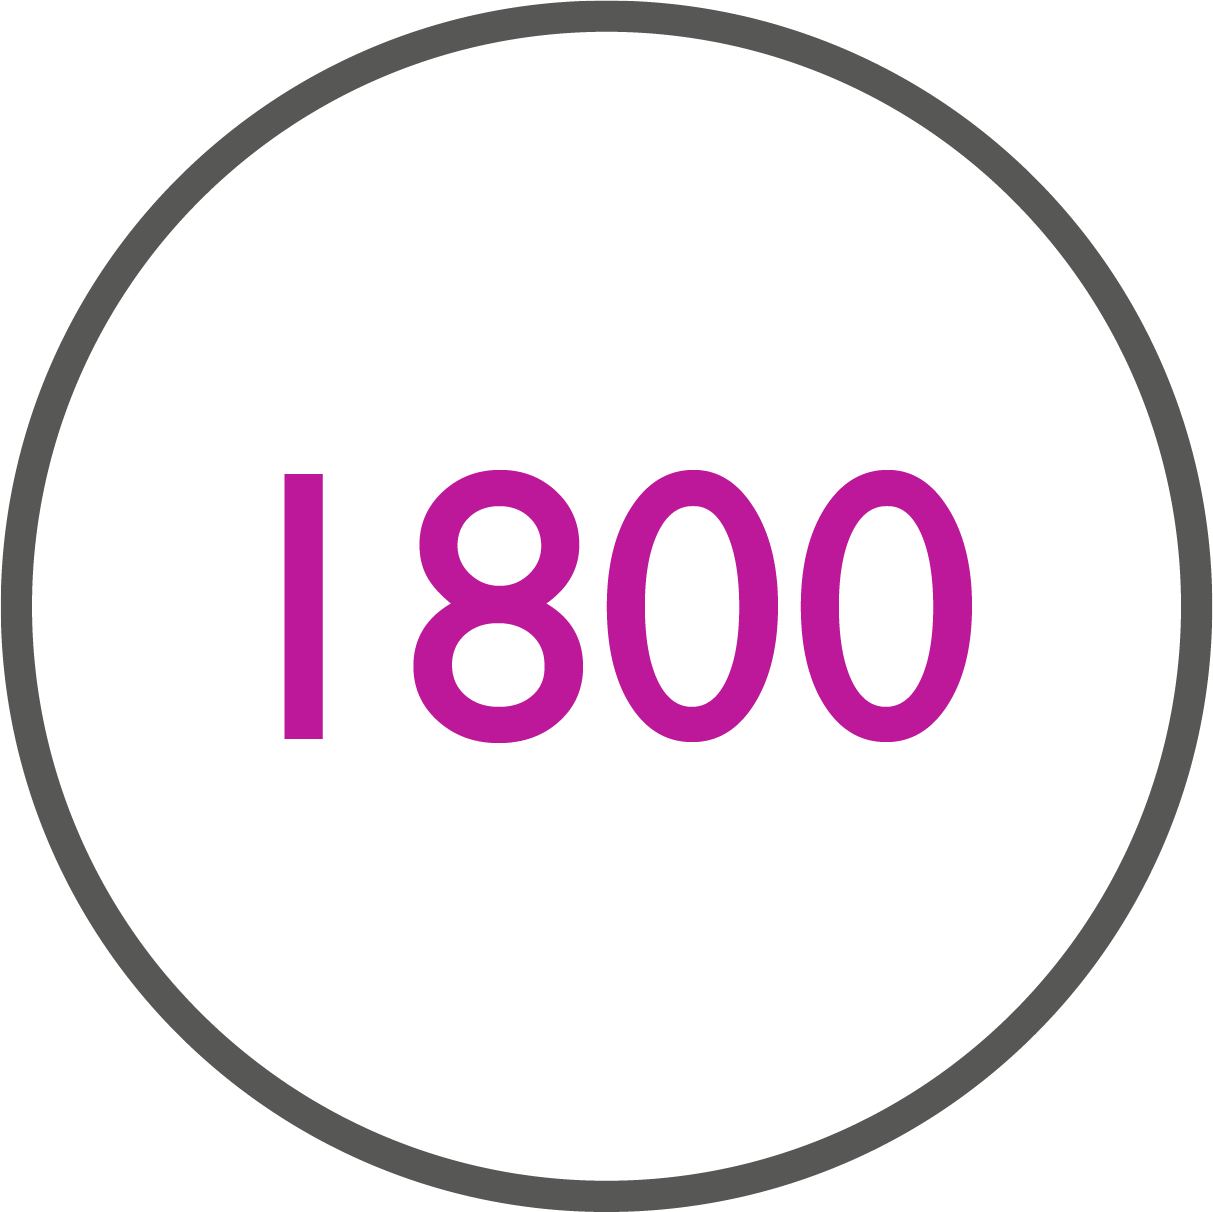 1800-numbers-icon